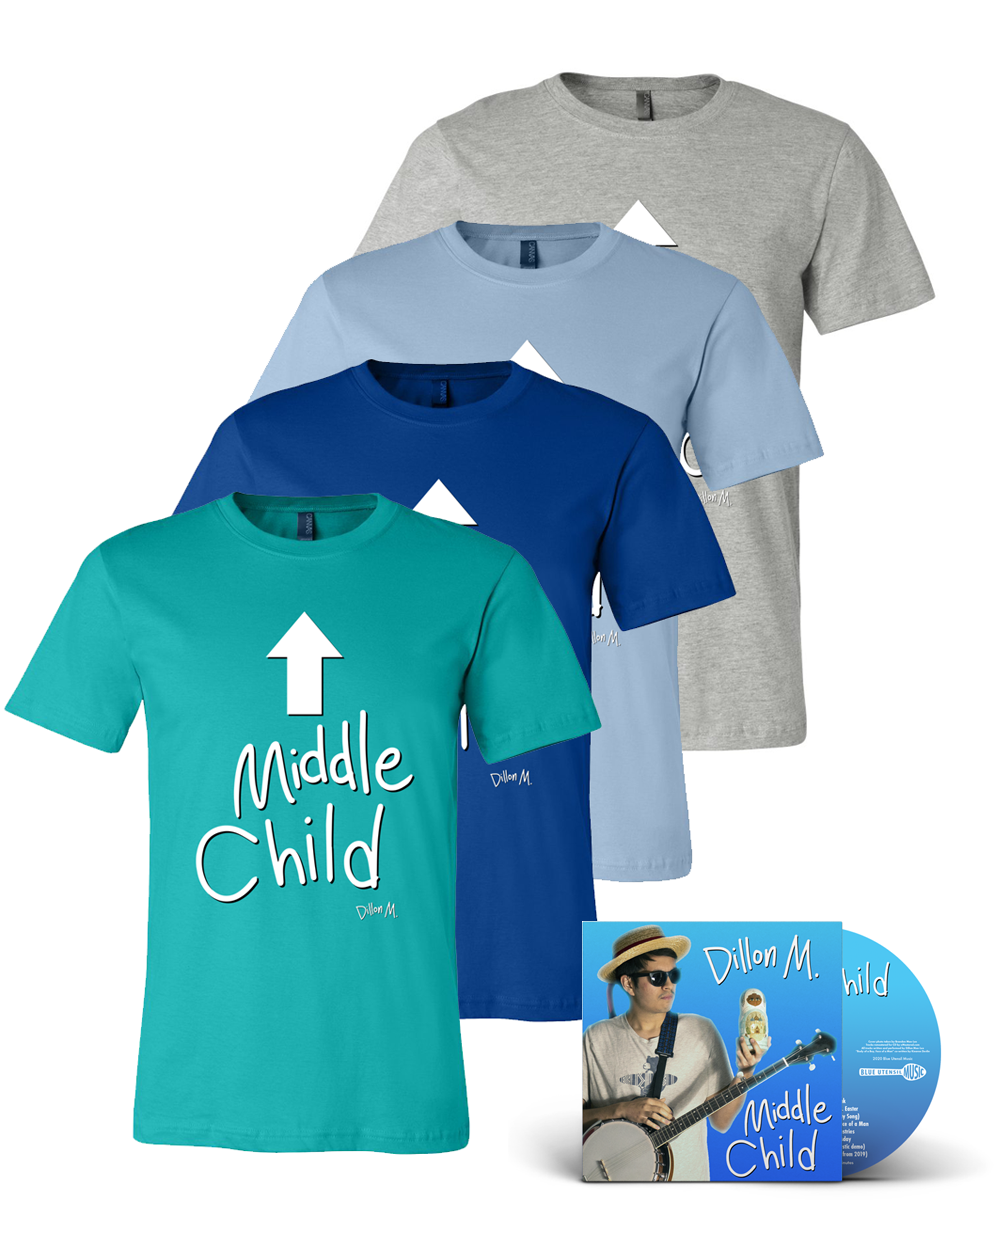 Dillon M. : Middle Child Tee & CD Bundle